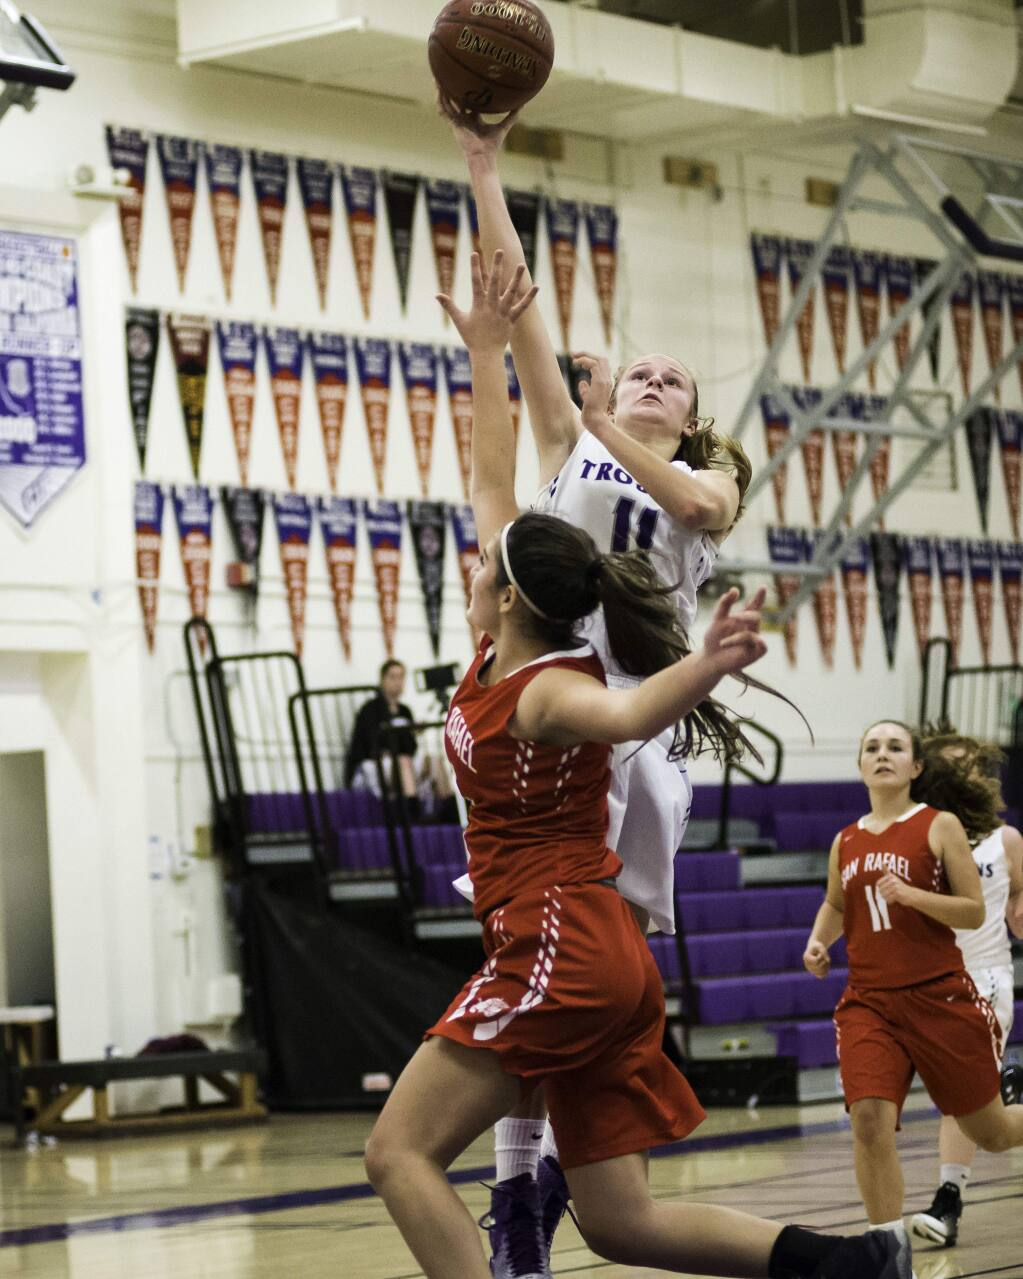 RICH LANGDON/FOR THE ARGUS-COURIERPetaluma's Nicole Costa rises above a San Rafael defender to score two of her game-high 14 points in the T-Girls victory.